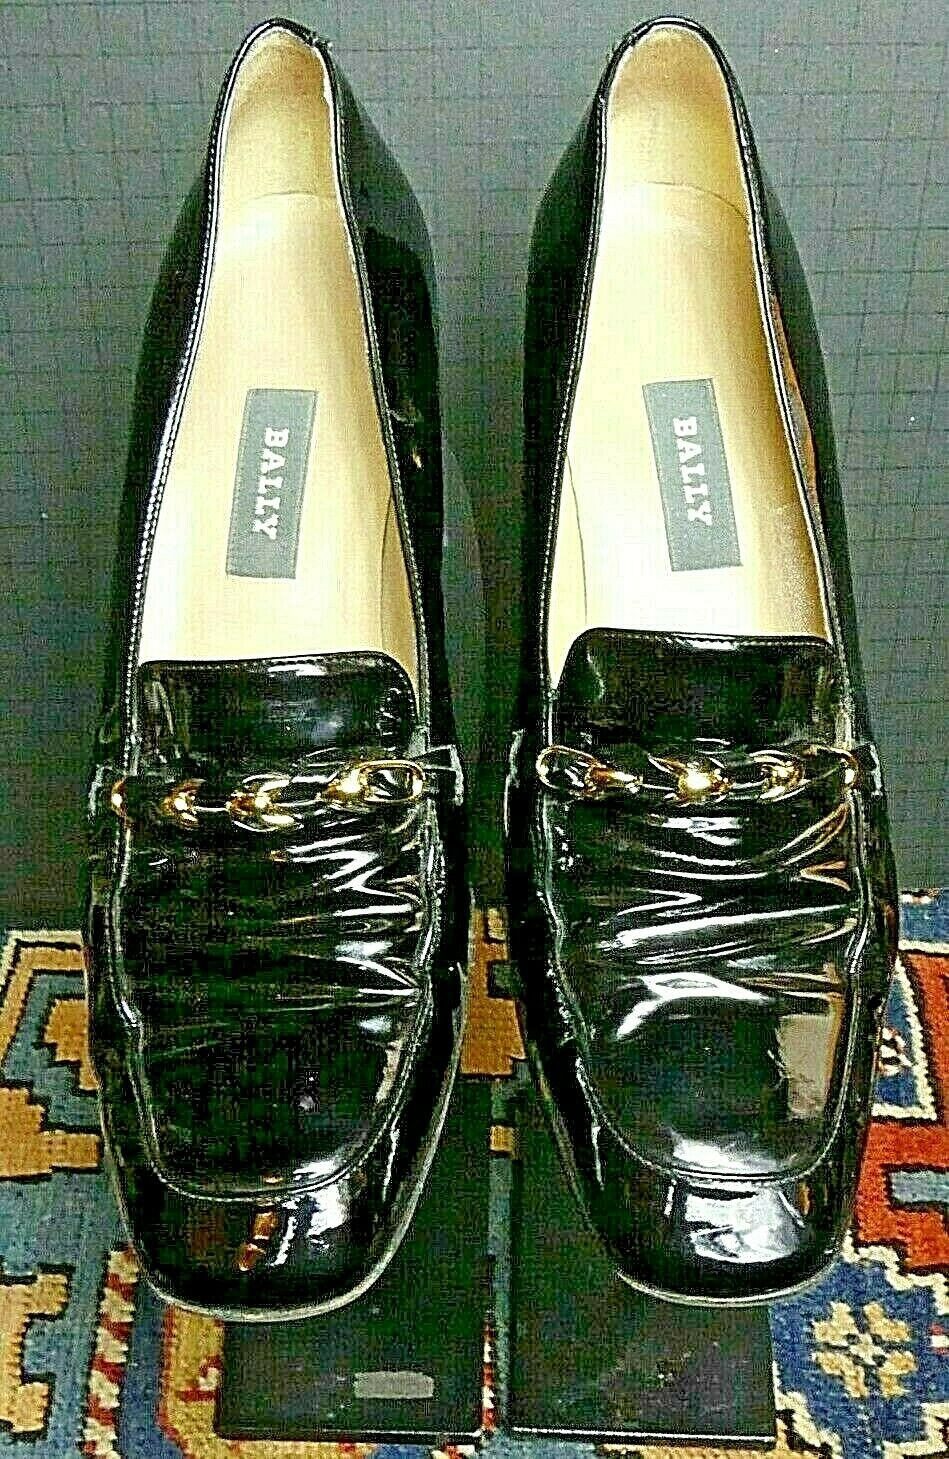 outlet online economico BALLY  DENRICA  Switzerland Classic nero Patent Leather Pumps Pumps Pumps Sz. 9.5M MINT   in vendita